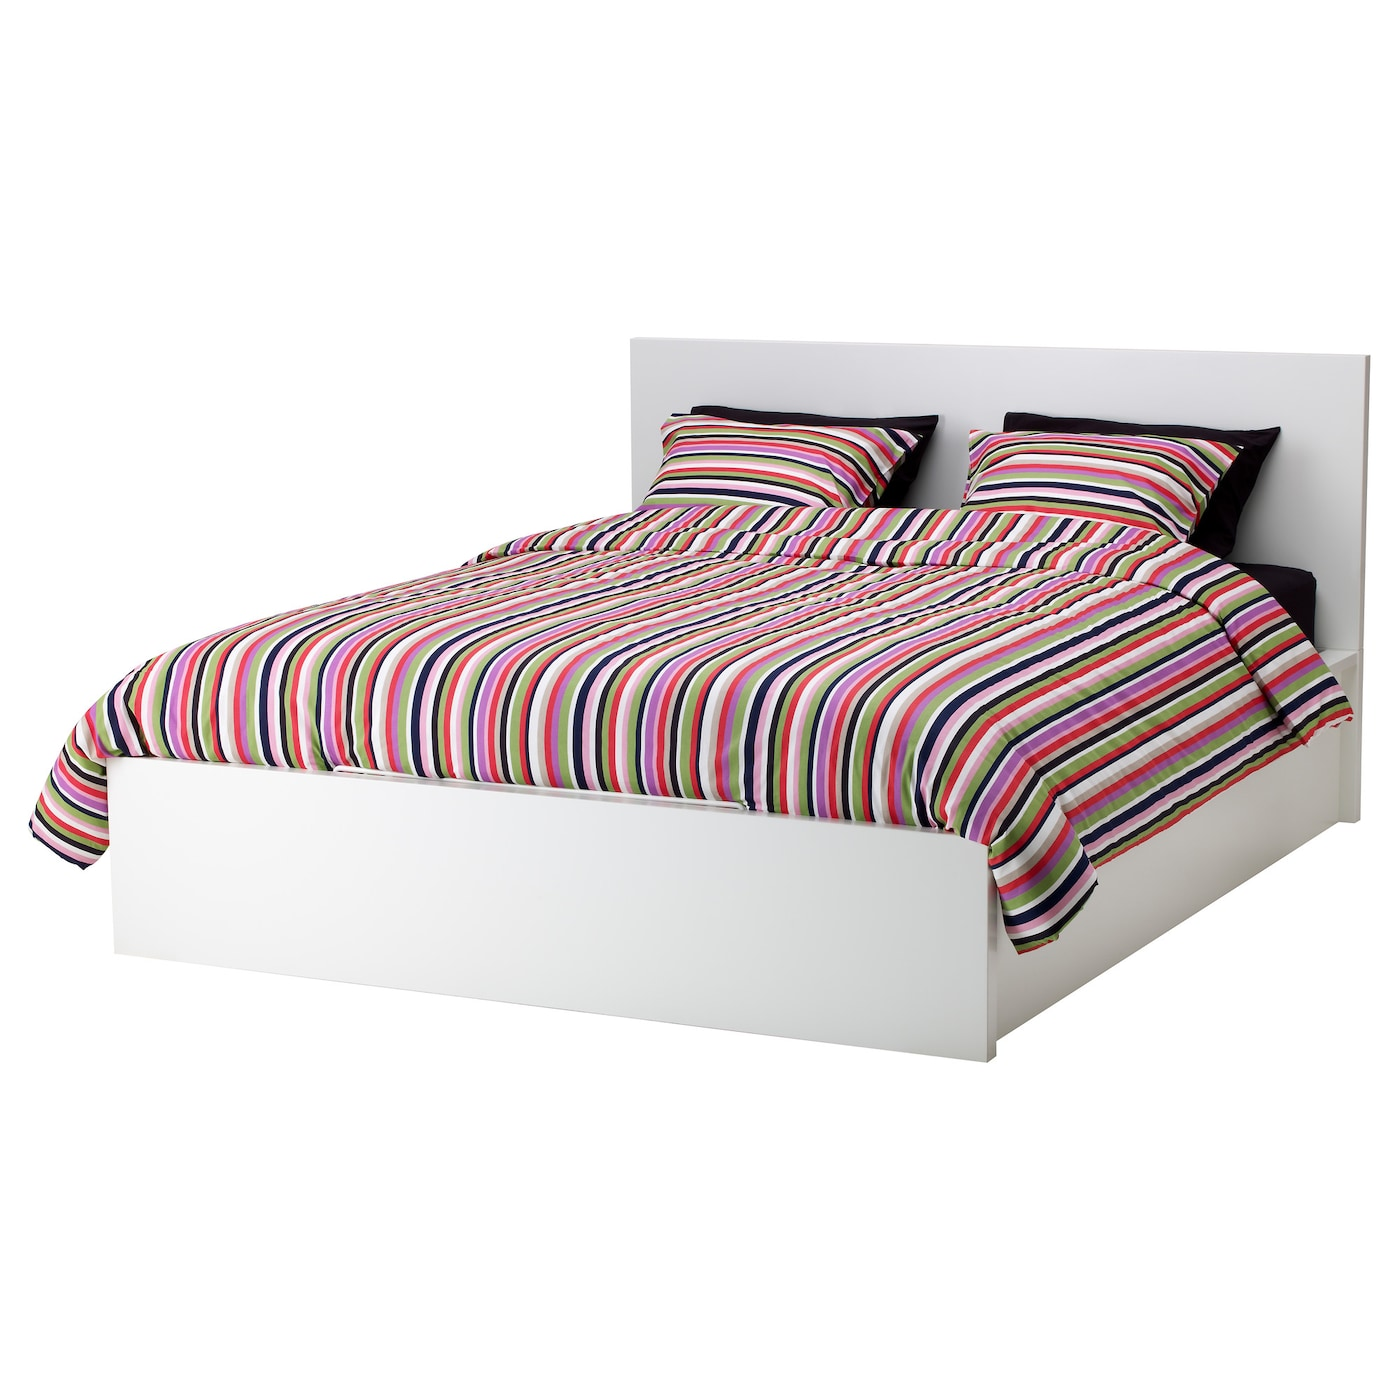 malm cadre lit coffre blanc 140x200 cm ikea. Black Bedroom Furniture Sets. Home Design Ideas